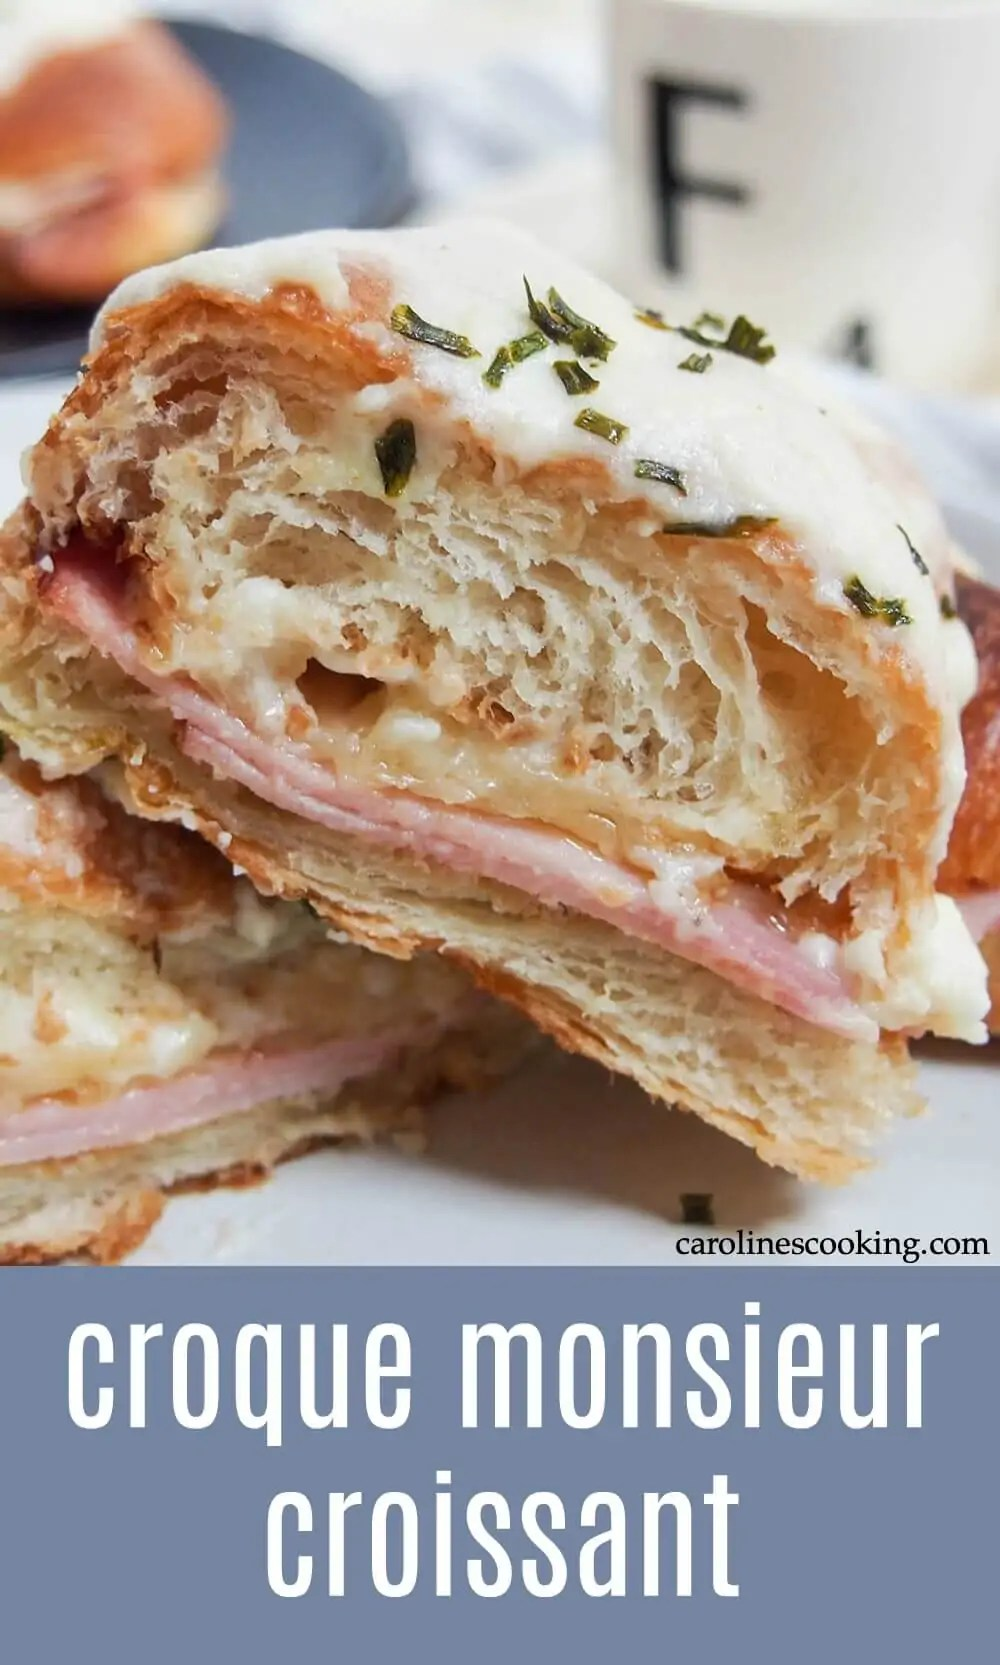 This croque monsieur croissant is the ultimate grilled ham and cheese sandwich. Instead of the usual plain white bread, here it's made in a croissant for a deliciously decadent brunch or lunch. #brunch #croissant #hamandcheese